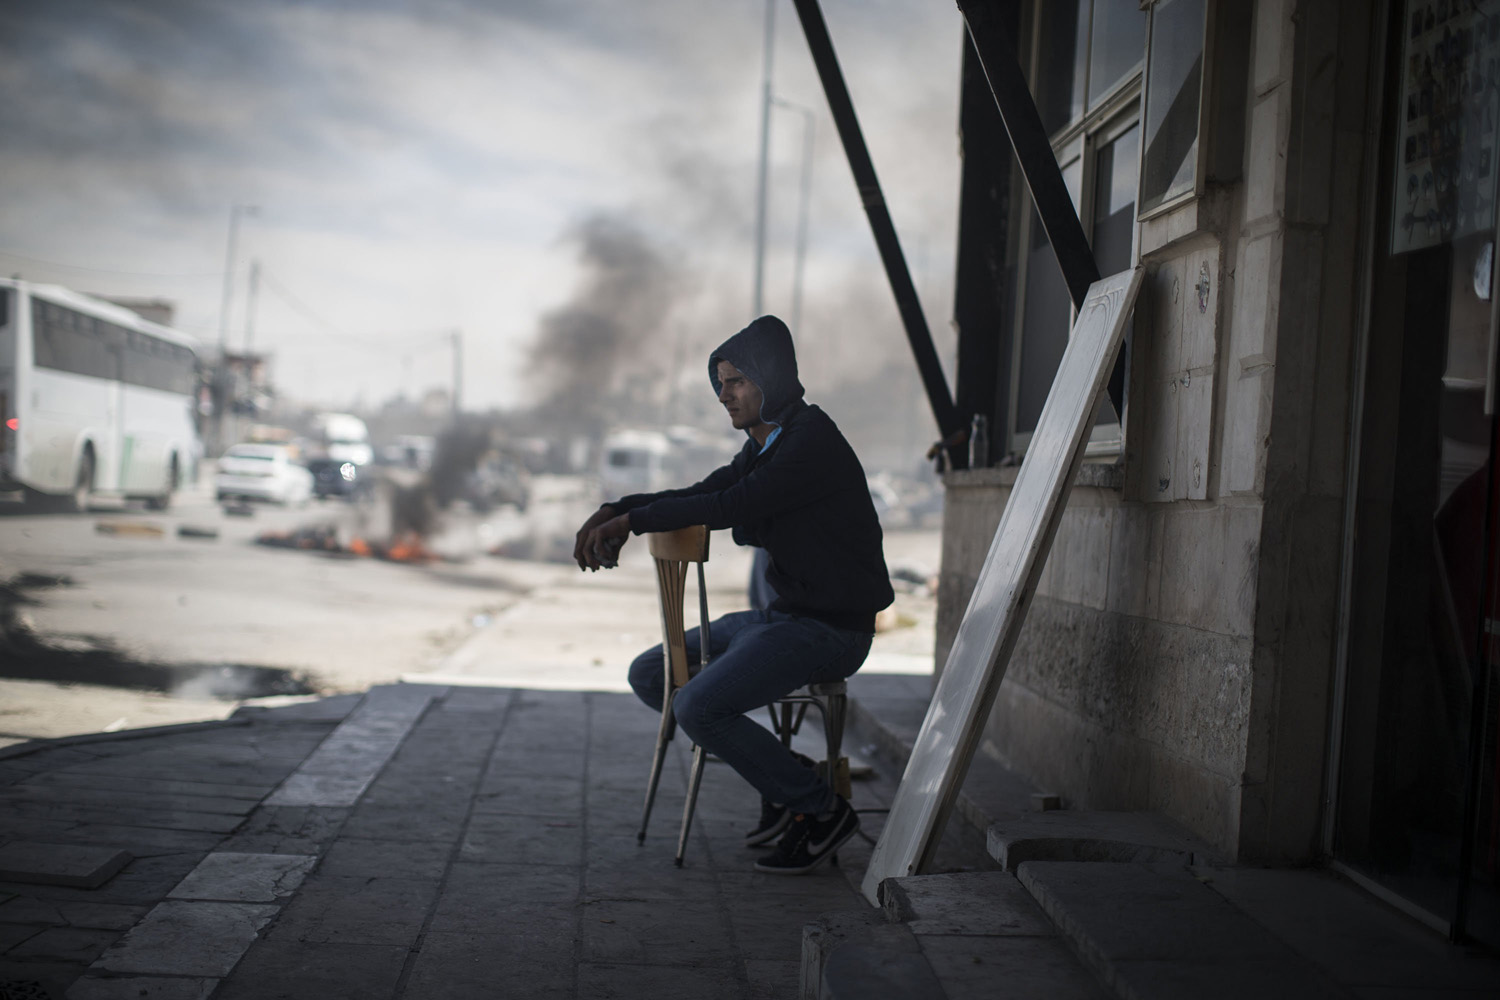 May 15, 2014. Palestinian seen sitting  during clashes with the Israeli army during Nakba day near the Qalandia checkpoint at the outskirts of Ramallah, the West Bank.